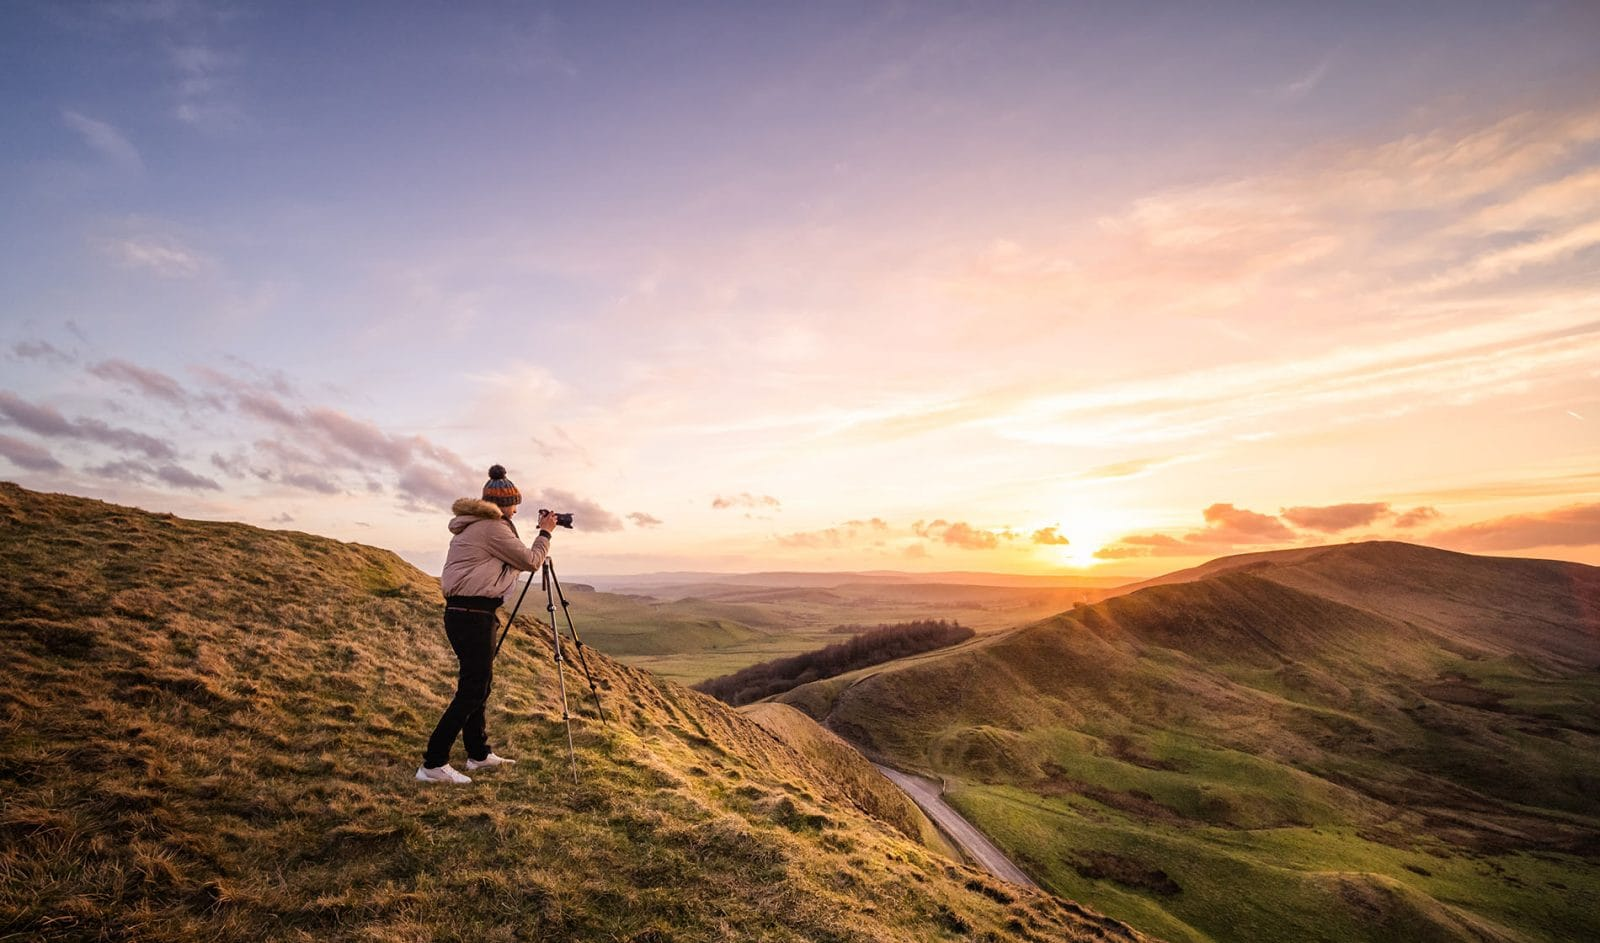 sunset overlooking mam tor with me the photographer